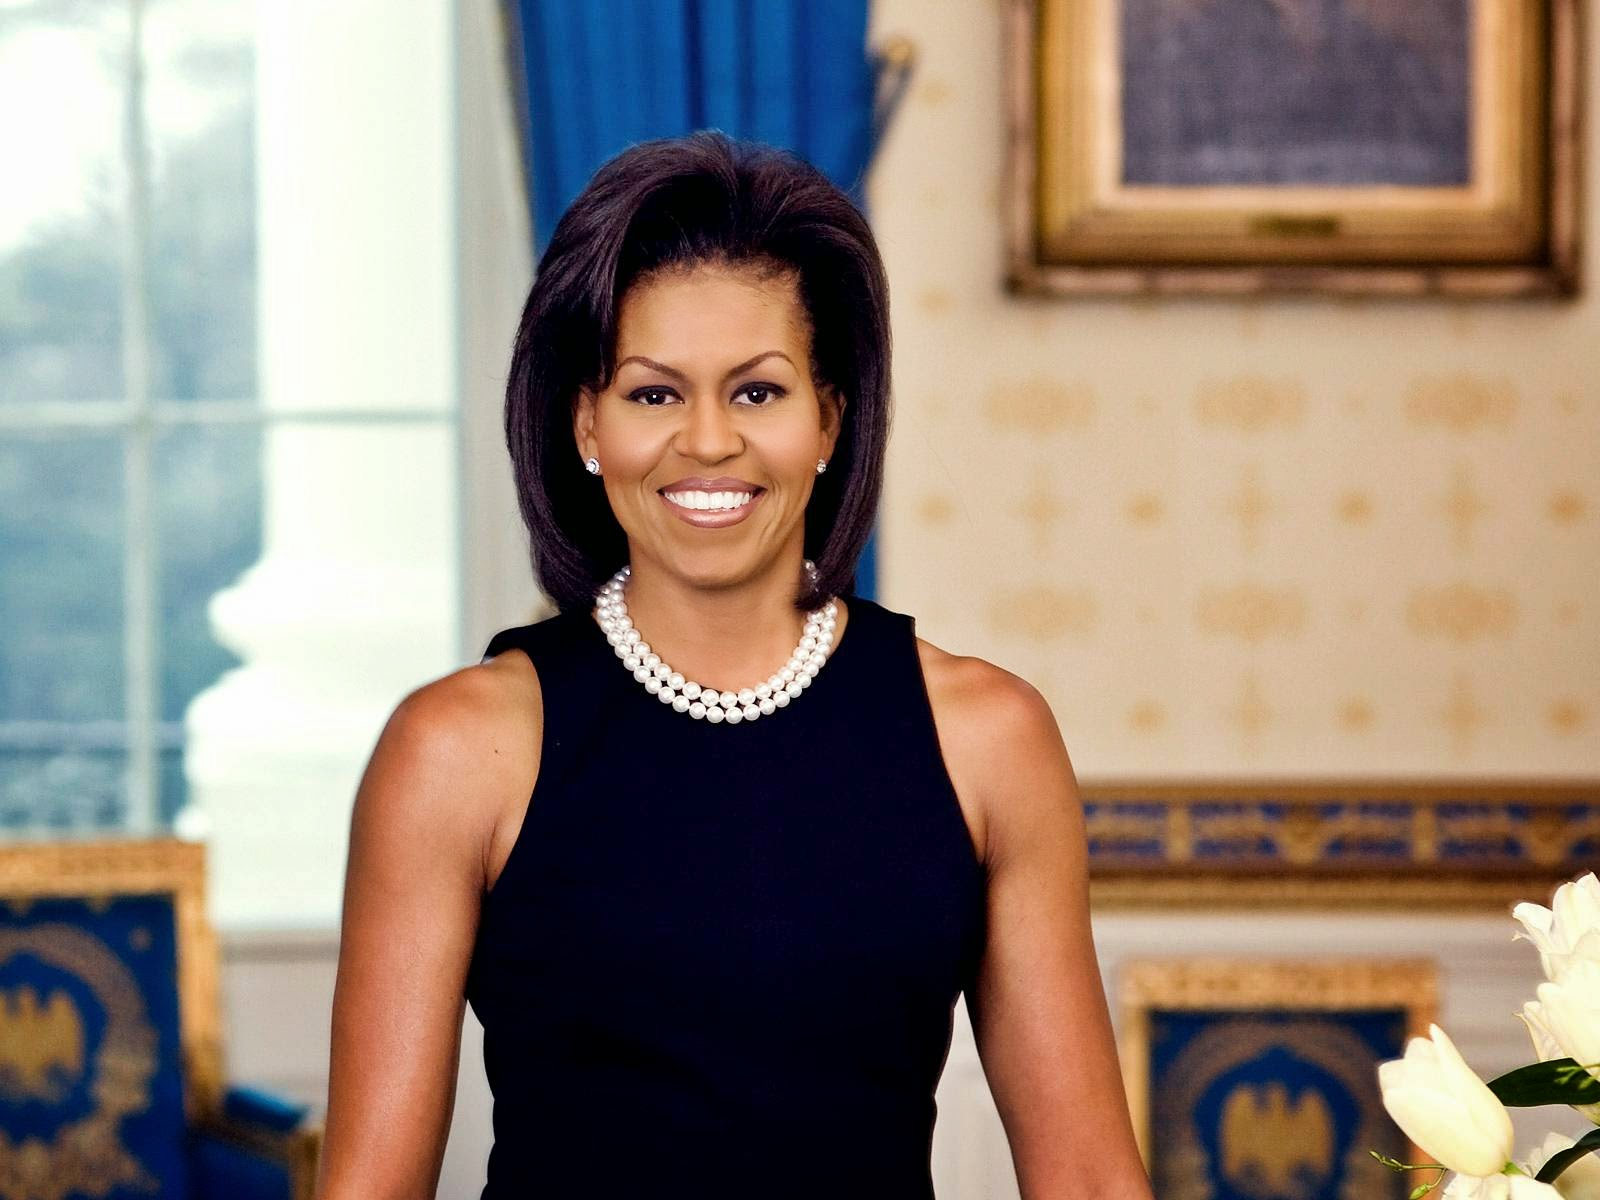 1600x1200 - Michelle Obama Wallpapers 9